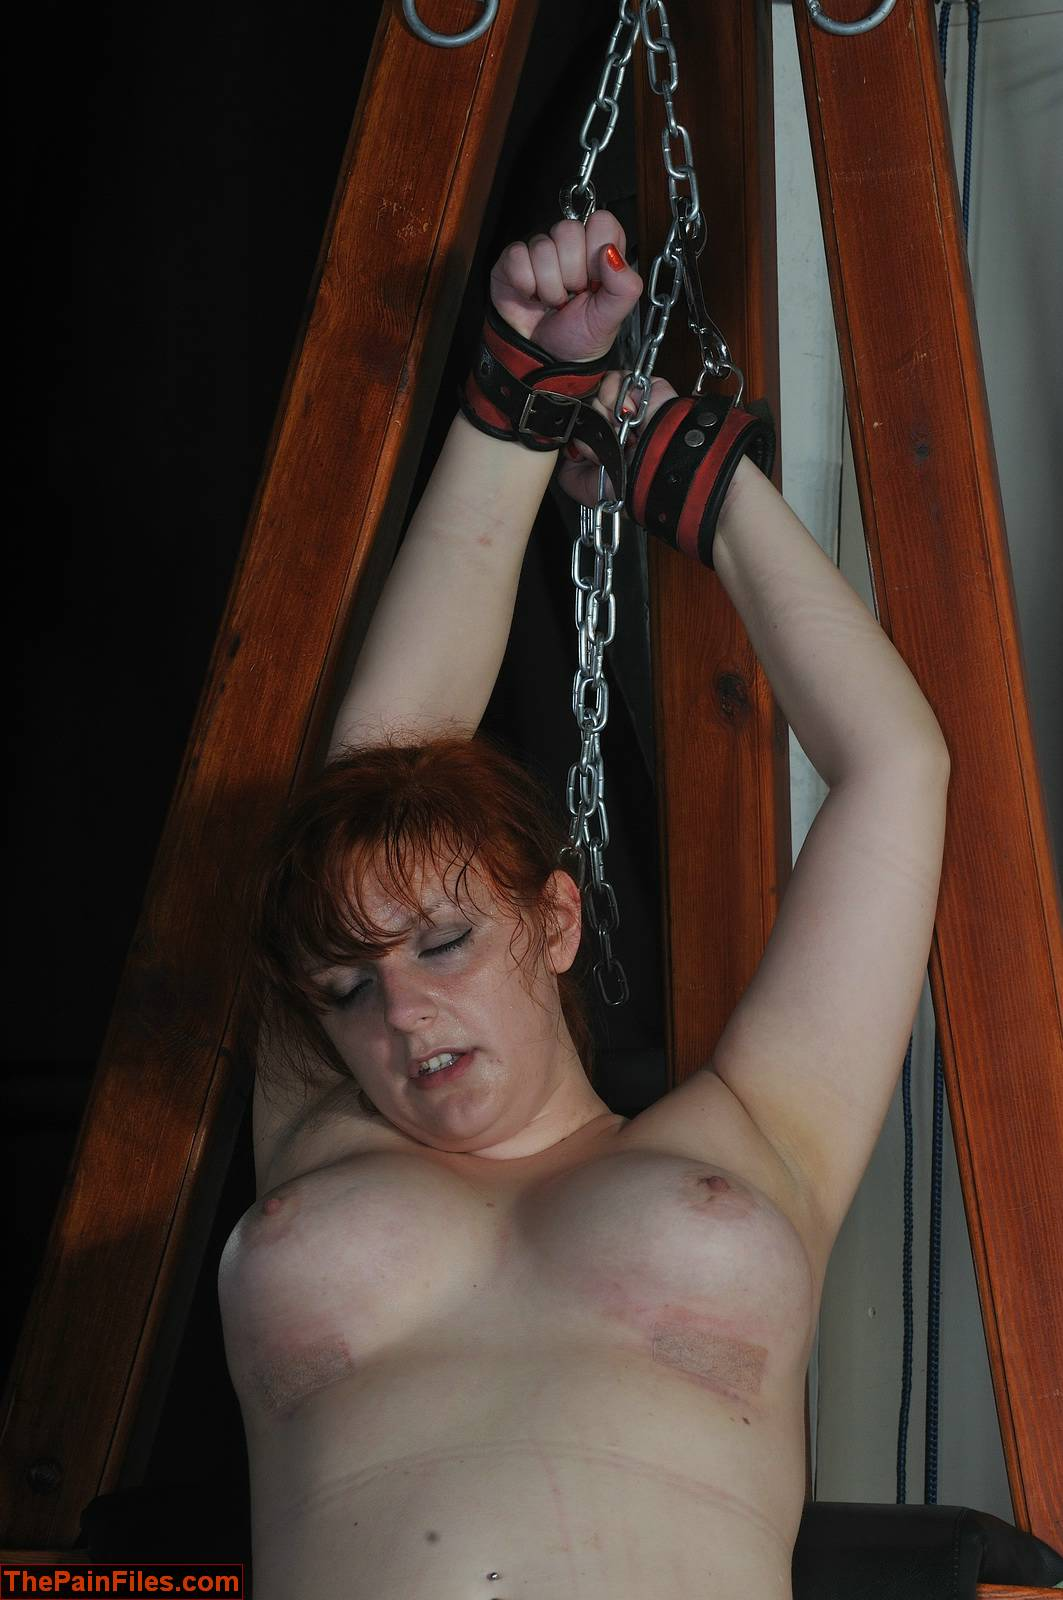 slave amateur photos private